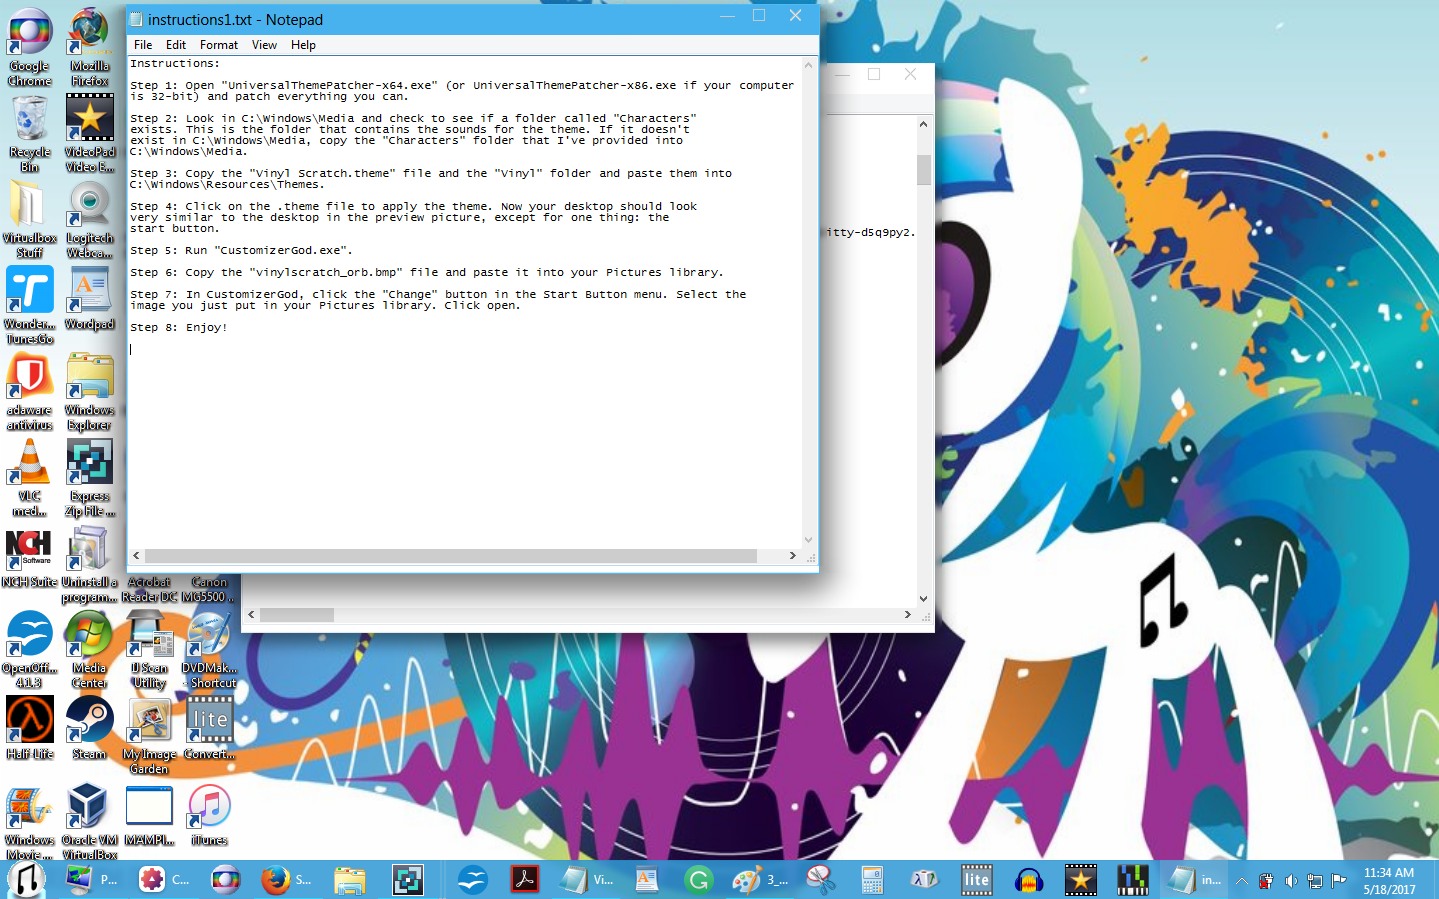 Vinyl Scratch Theme for Windows 7 (Read) by KD-32XS945 on